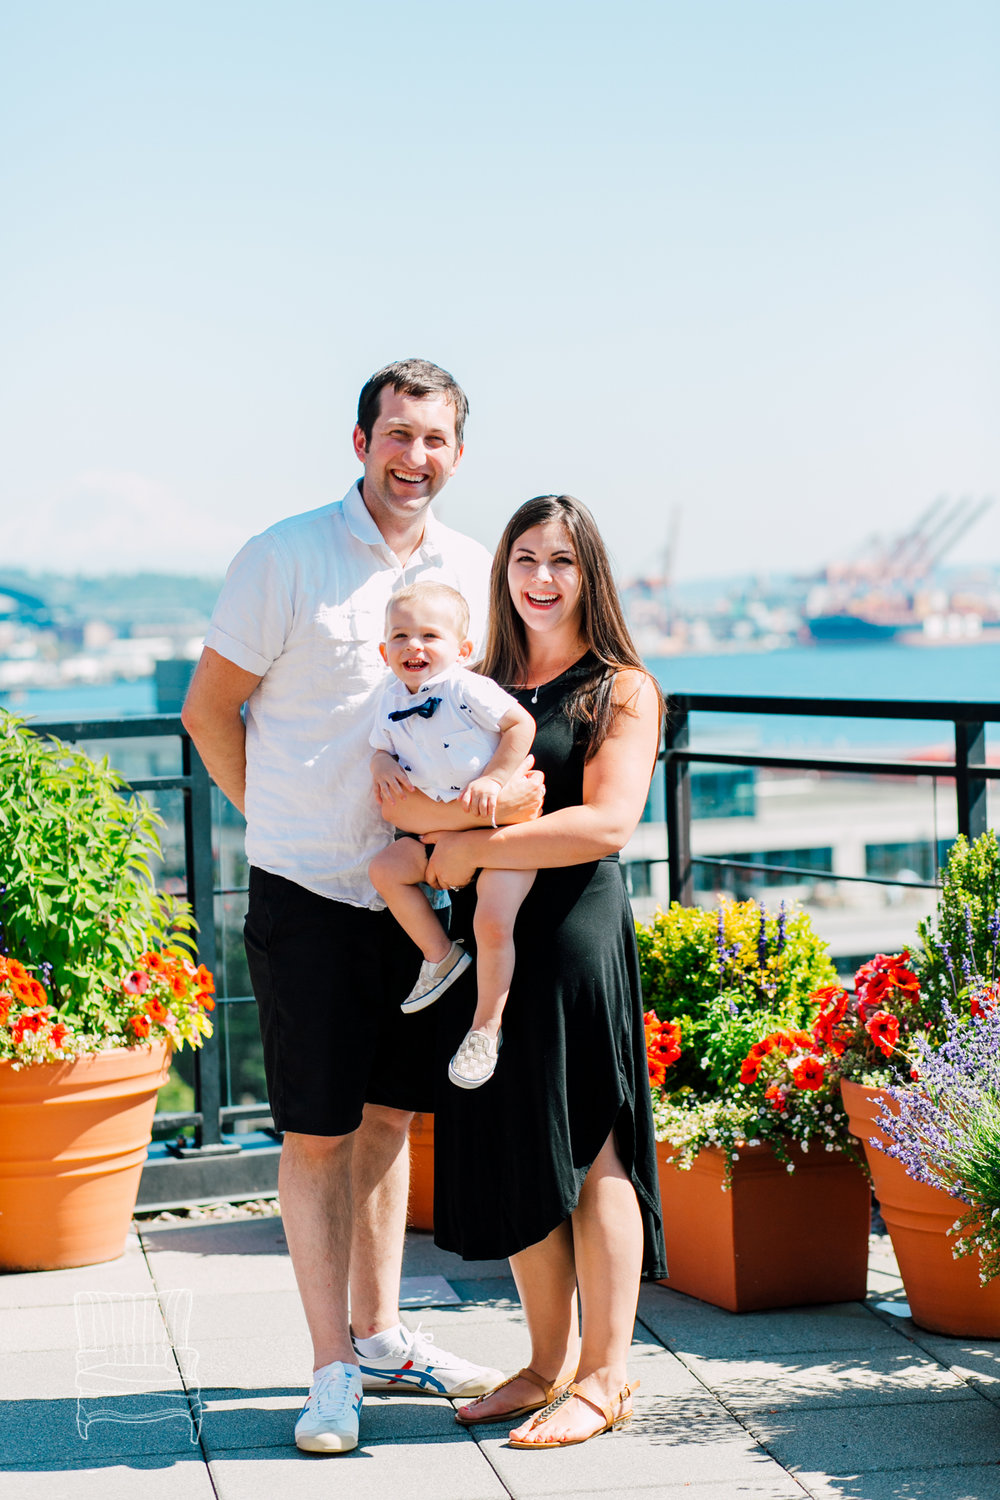 seattle-family-photographer-katheryn-moran-keith-1-2.jpg